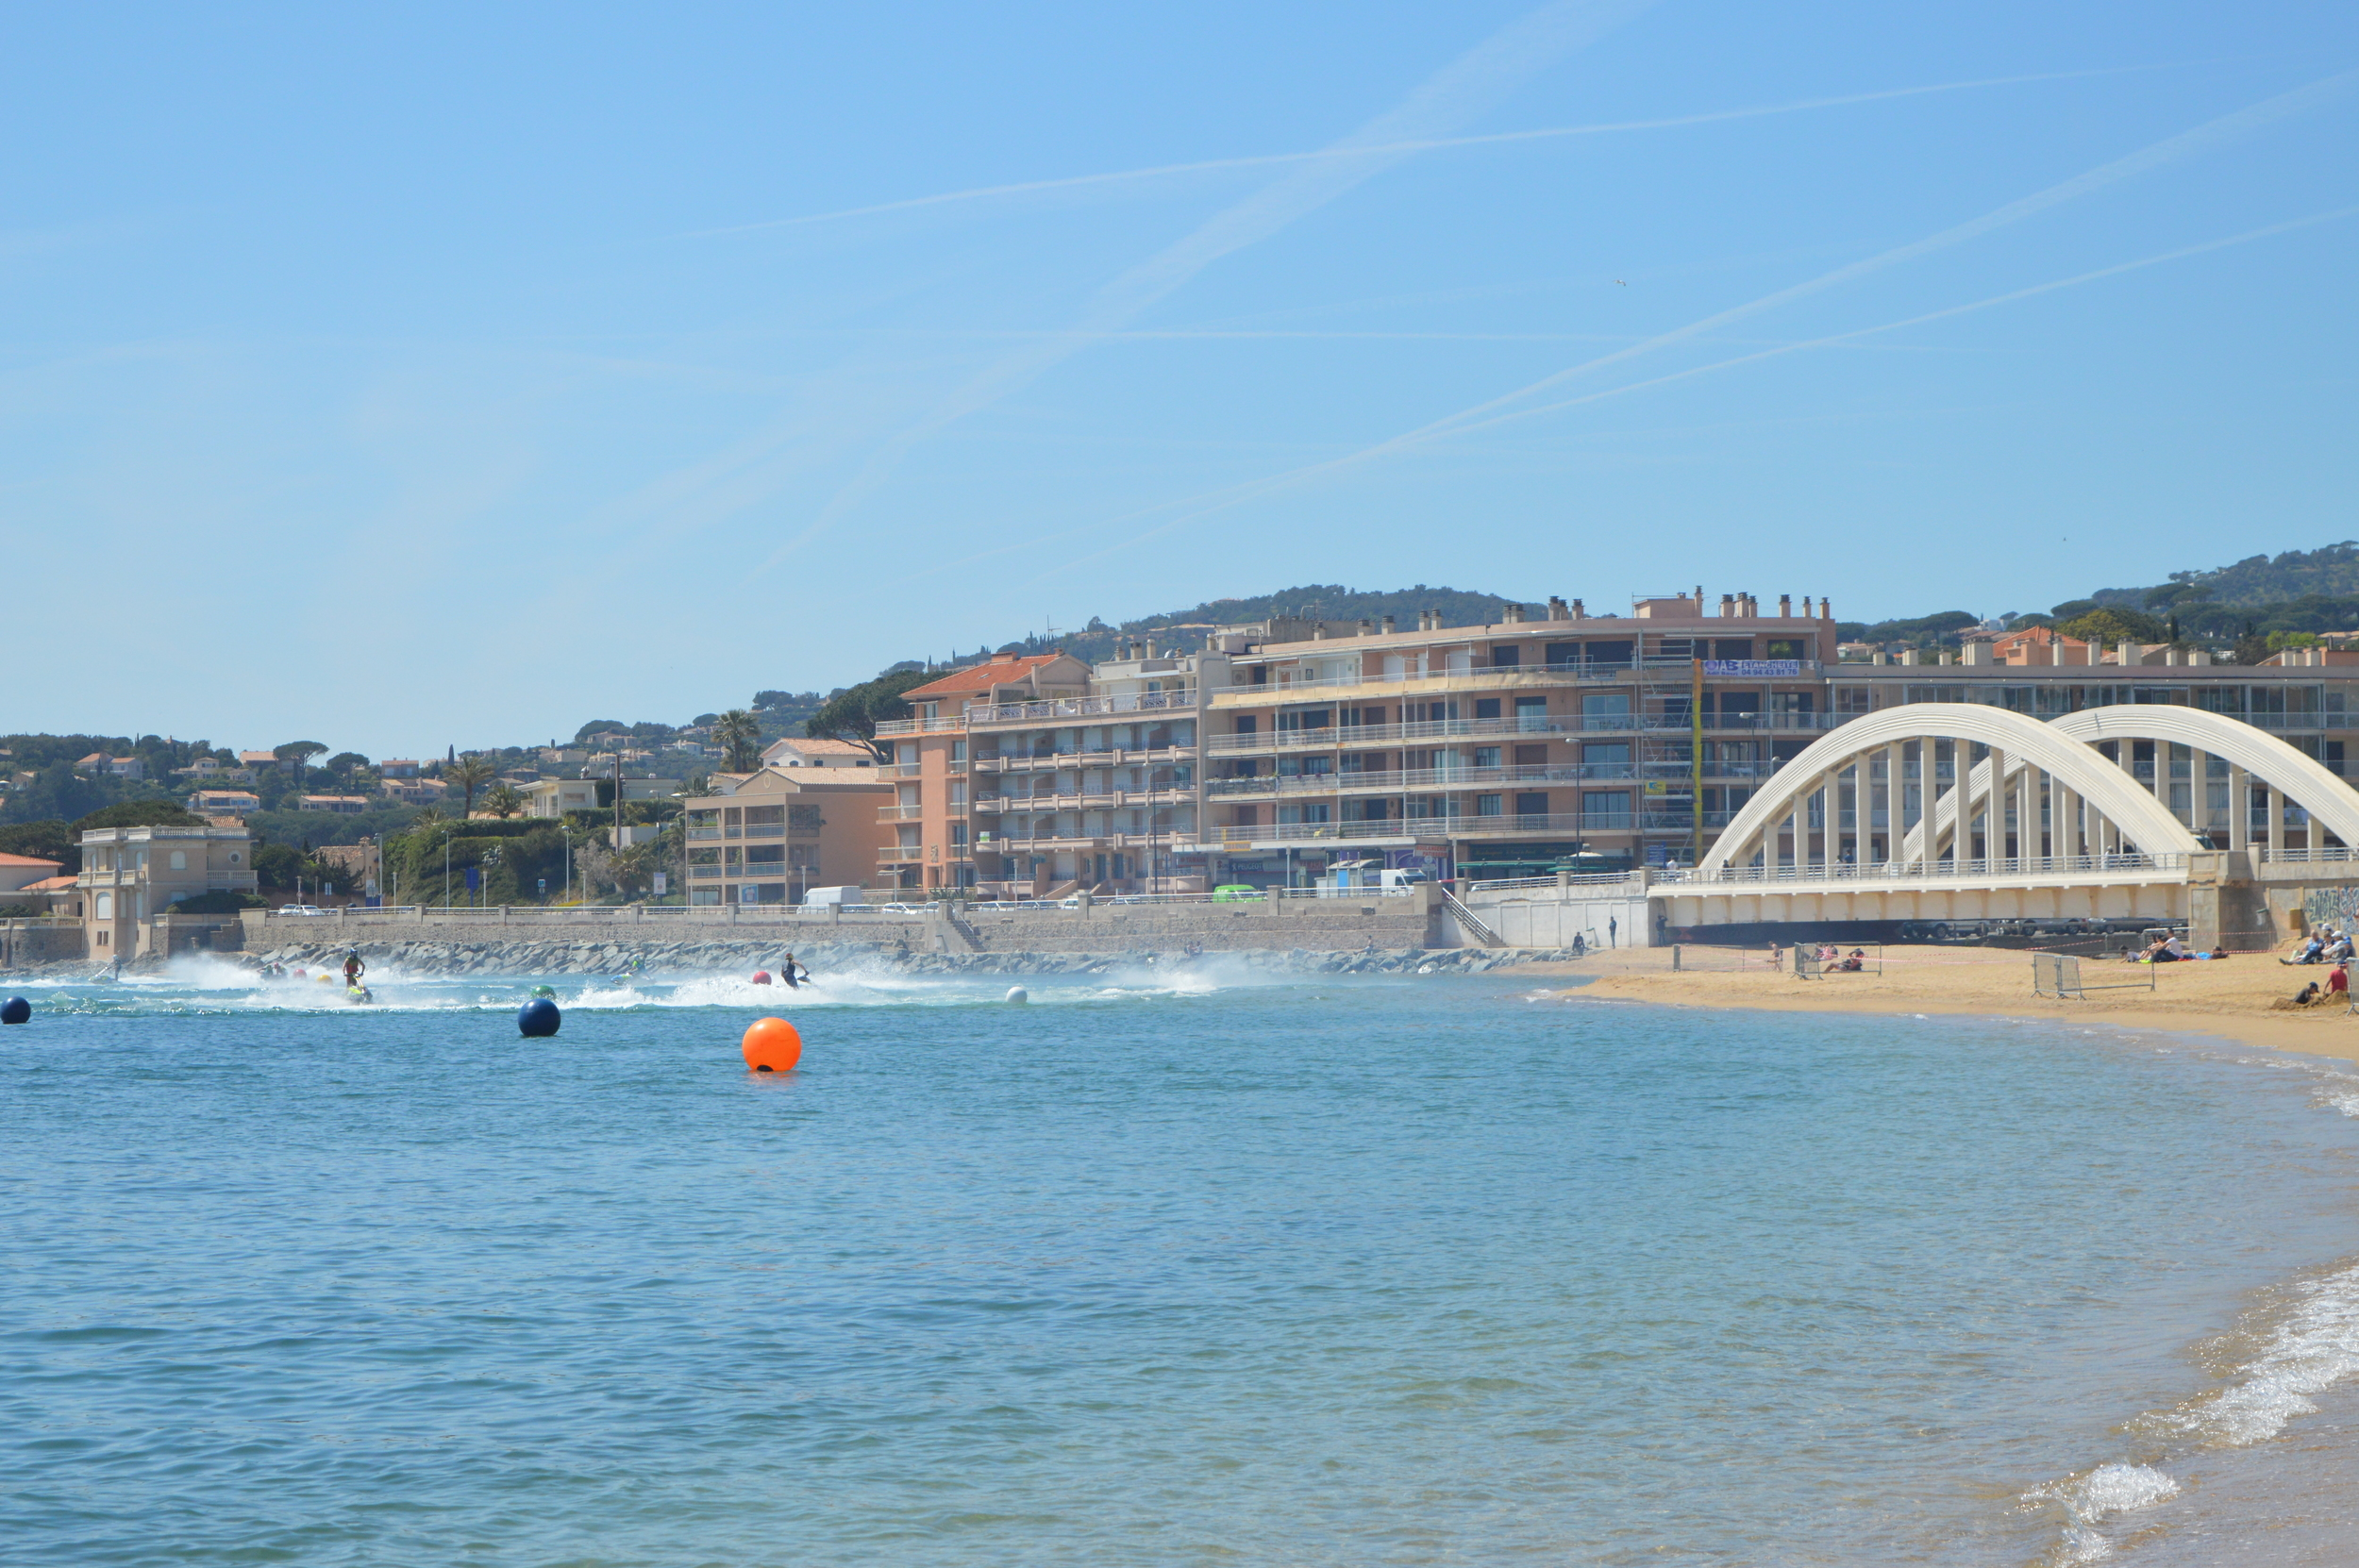 The Famous Bridge of Ste Maxime (More about it later)